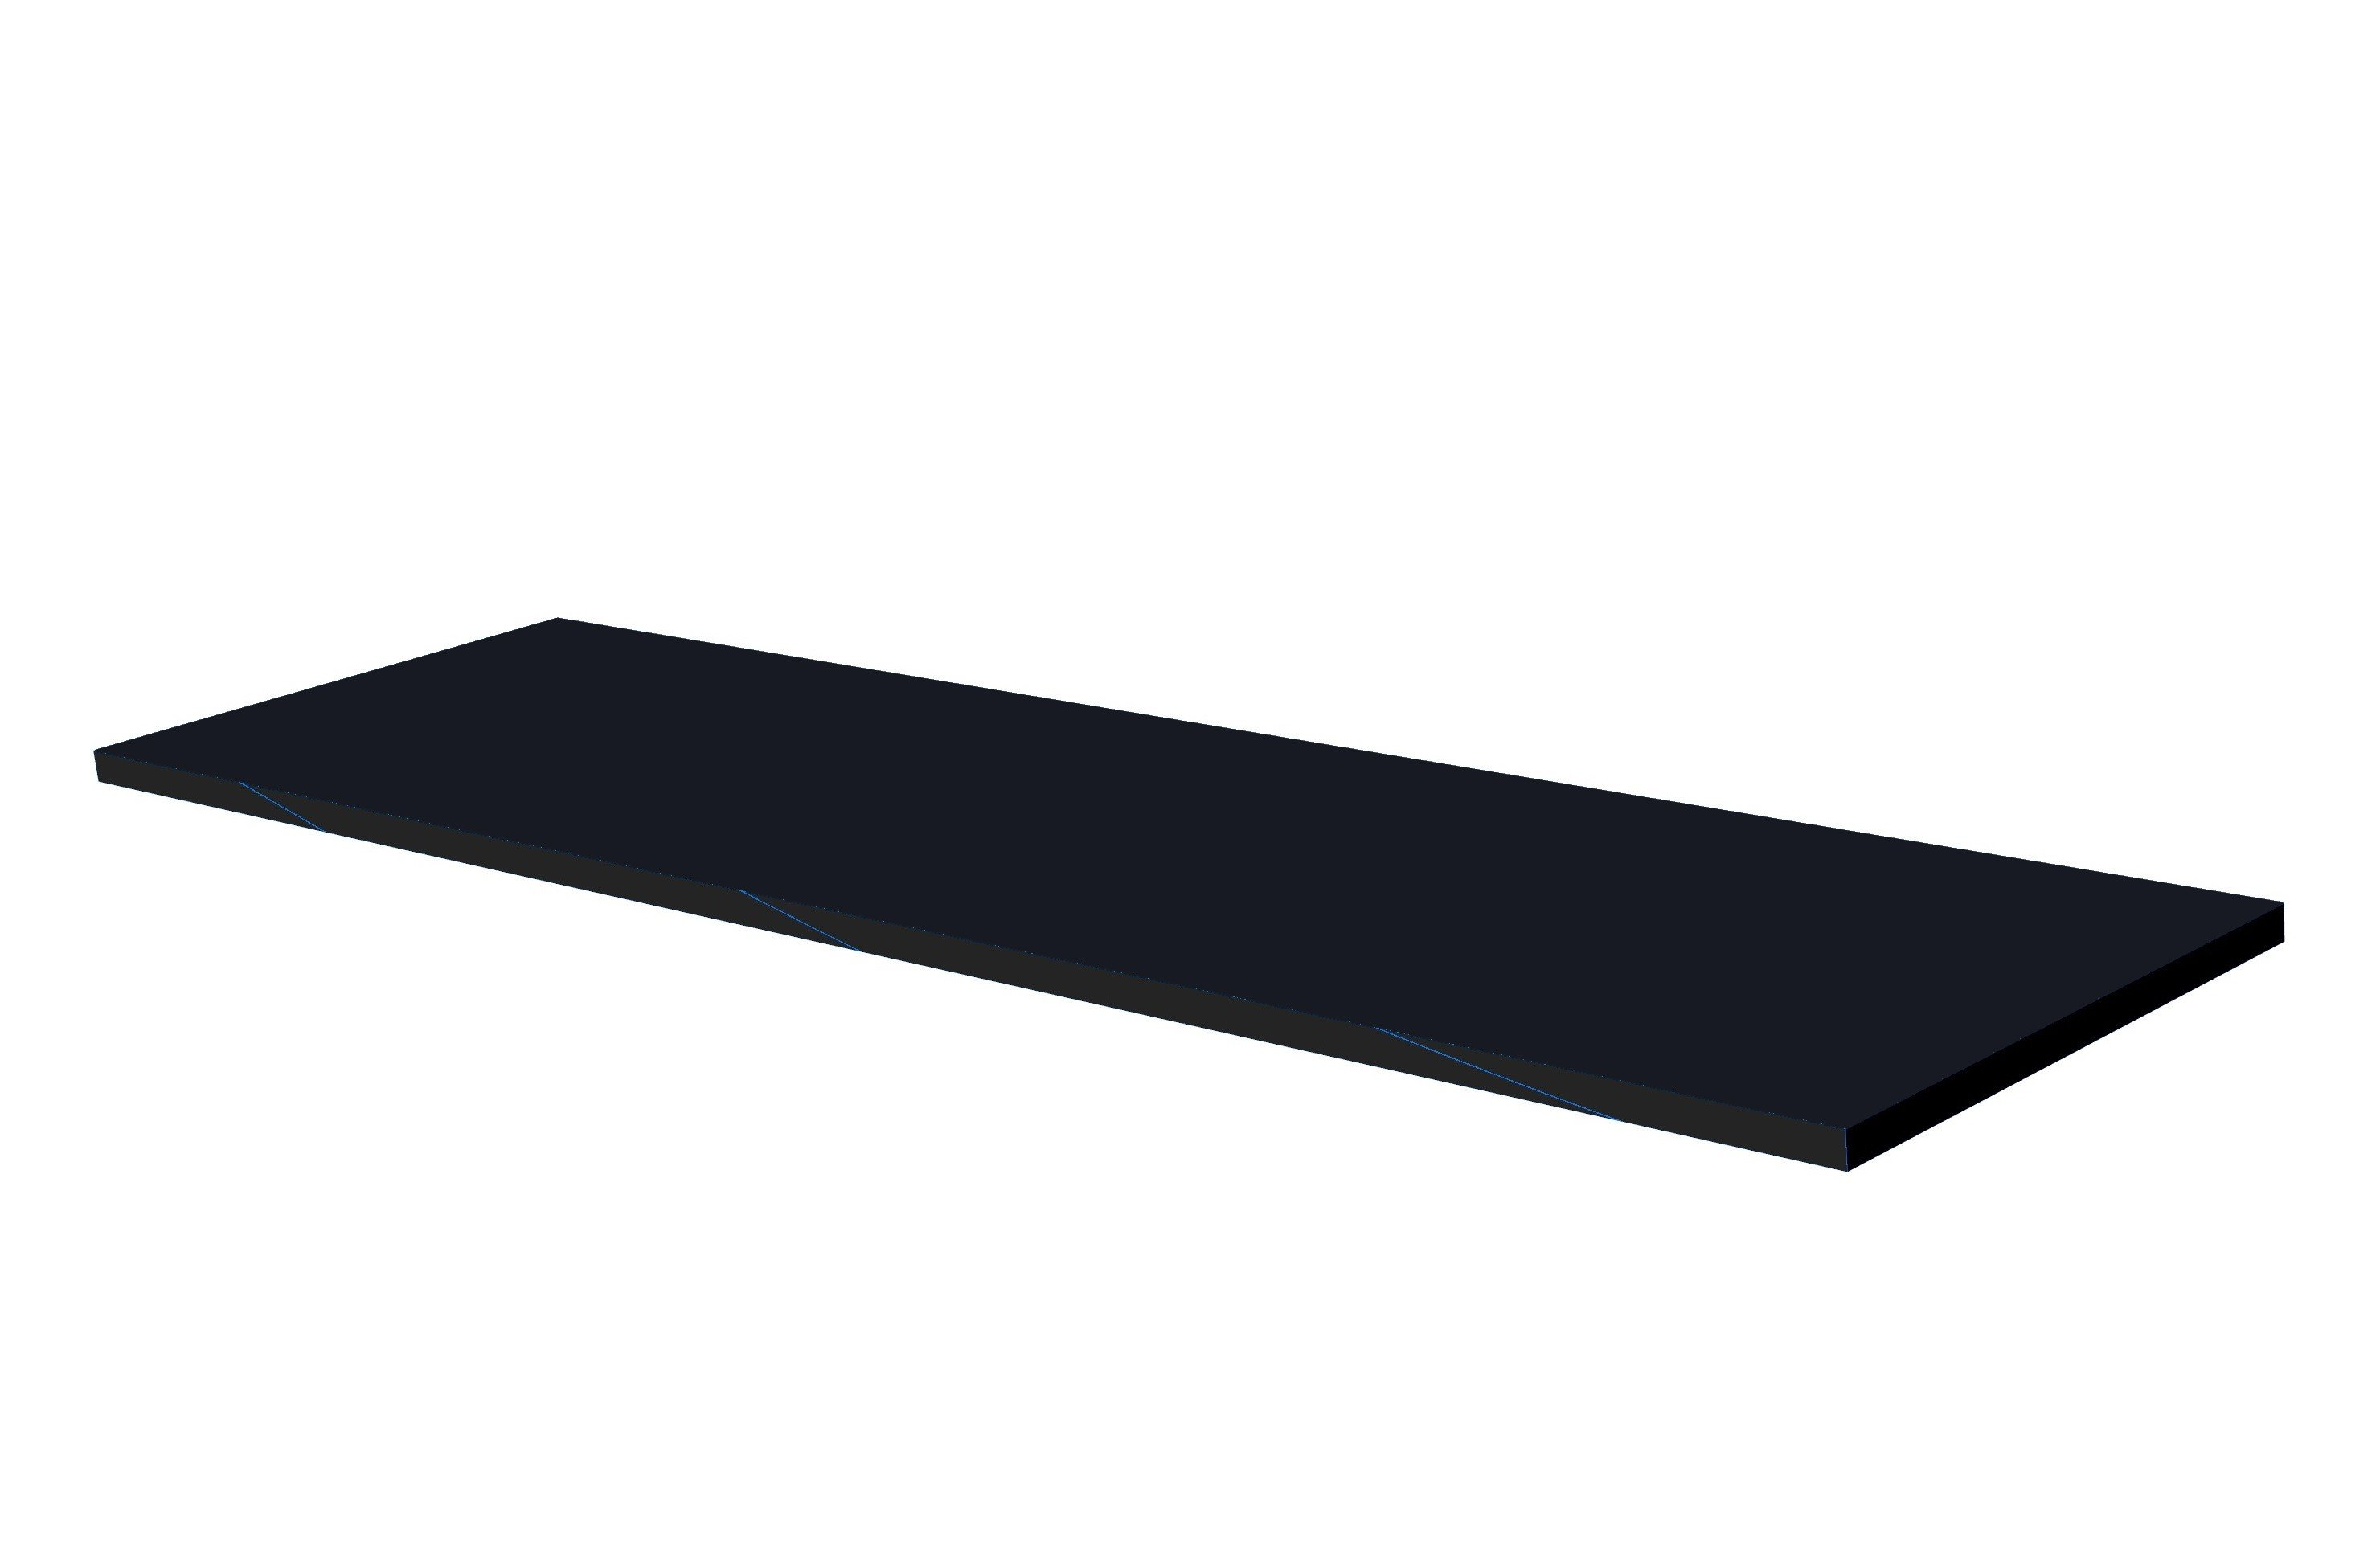 Dark rubber sheet